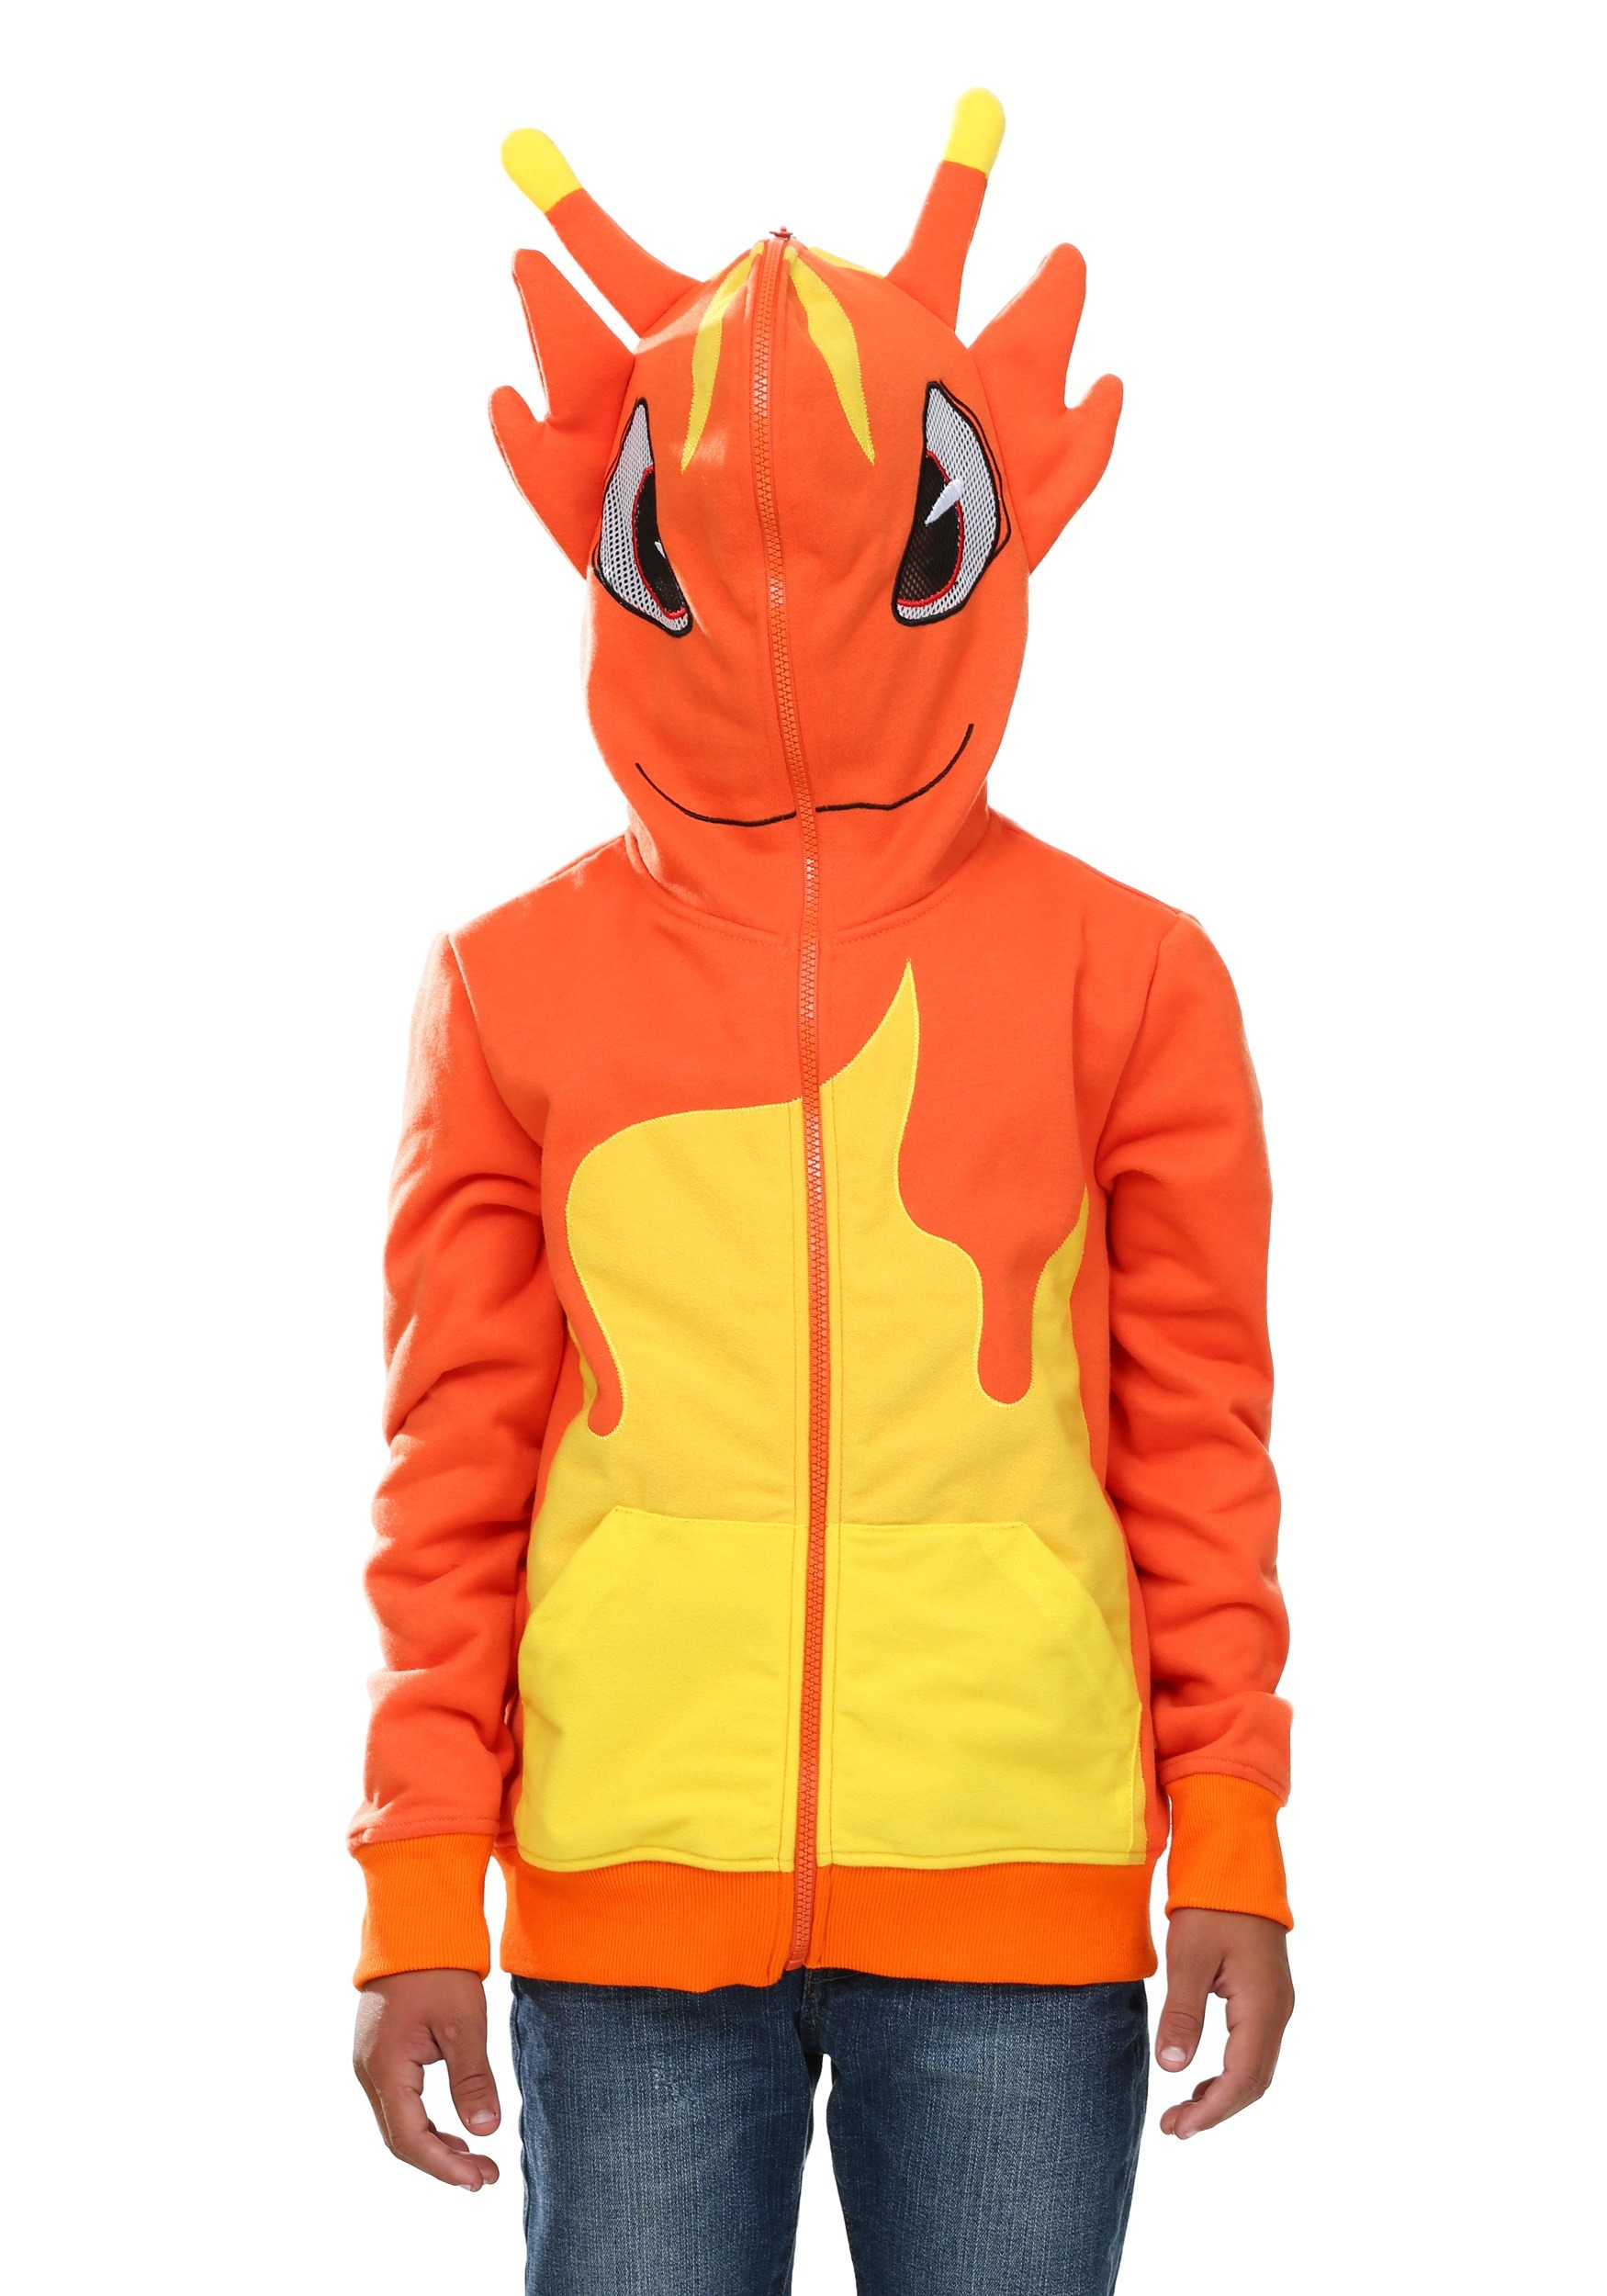 Kids Slugterra Costume Hooded Sweatshirt  sc 1 st  Halloween Costumes & Kids Slugterra Costume Hoodie